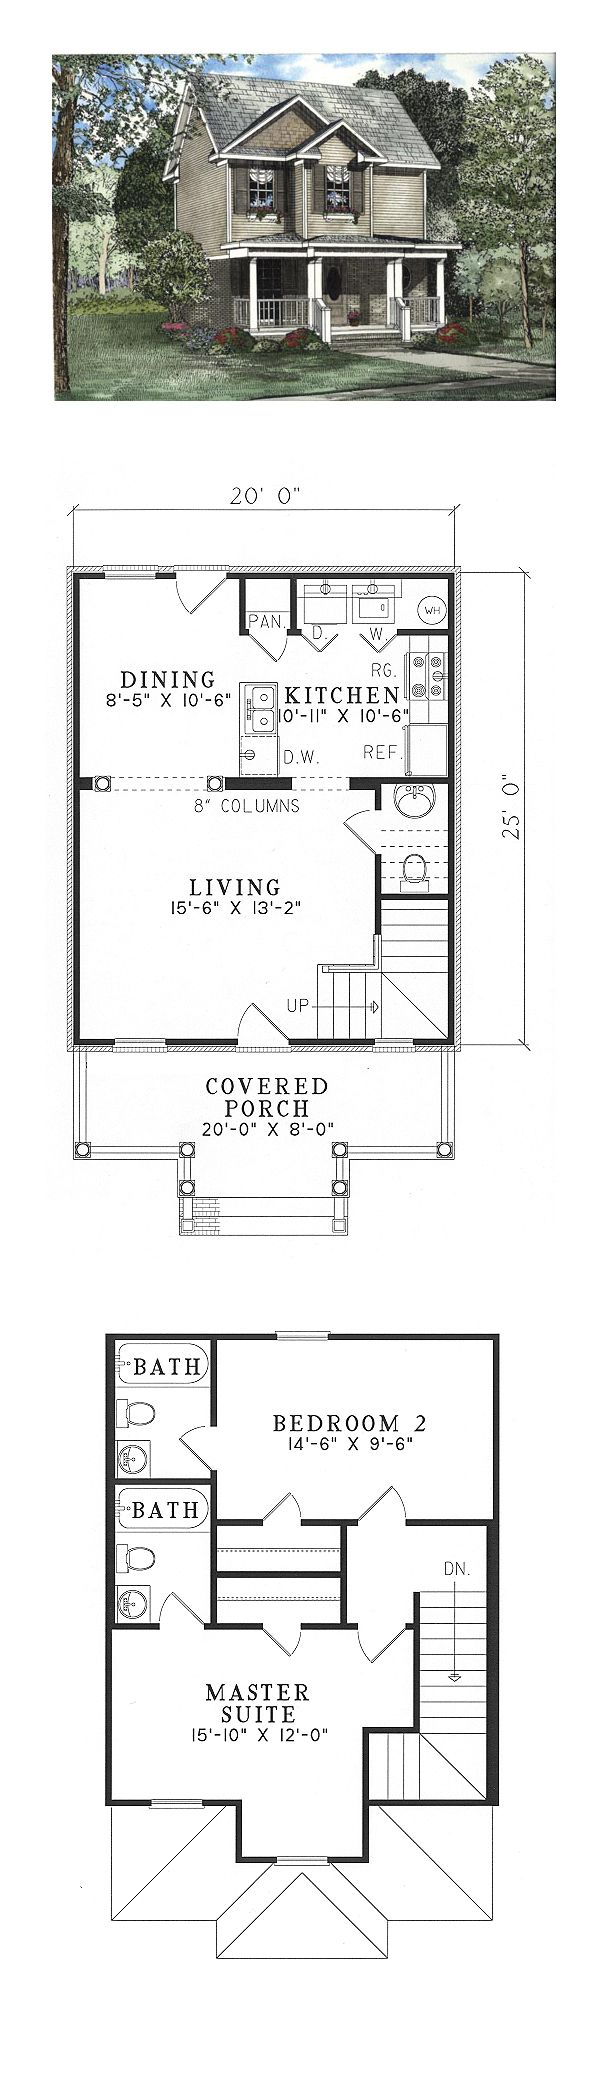 Best 25 narrow lot house plans ideas on pinterest narrow house plans retirement house plans for Narrow lot house plans